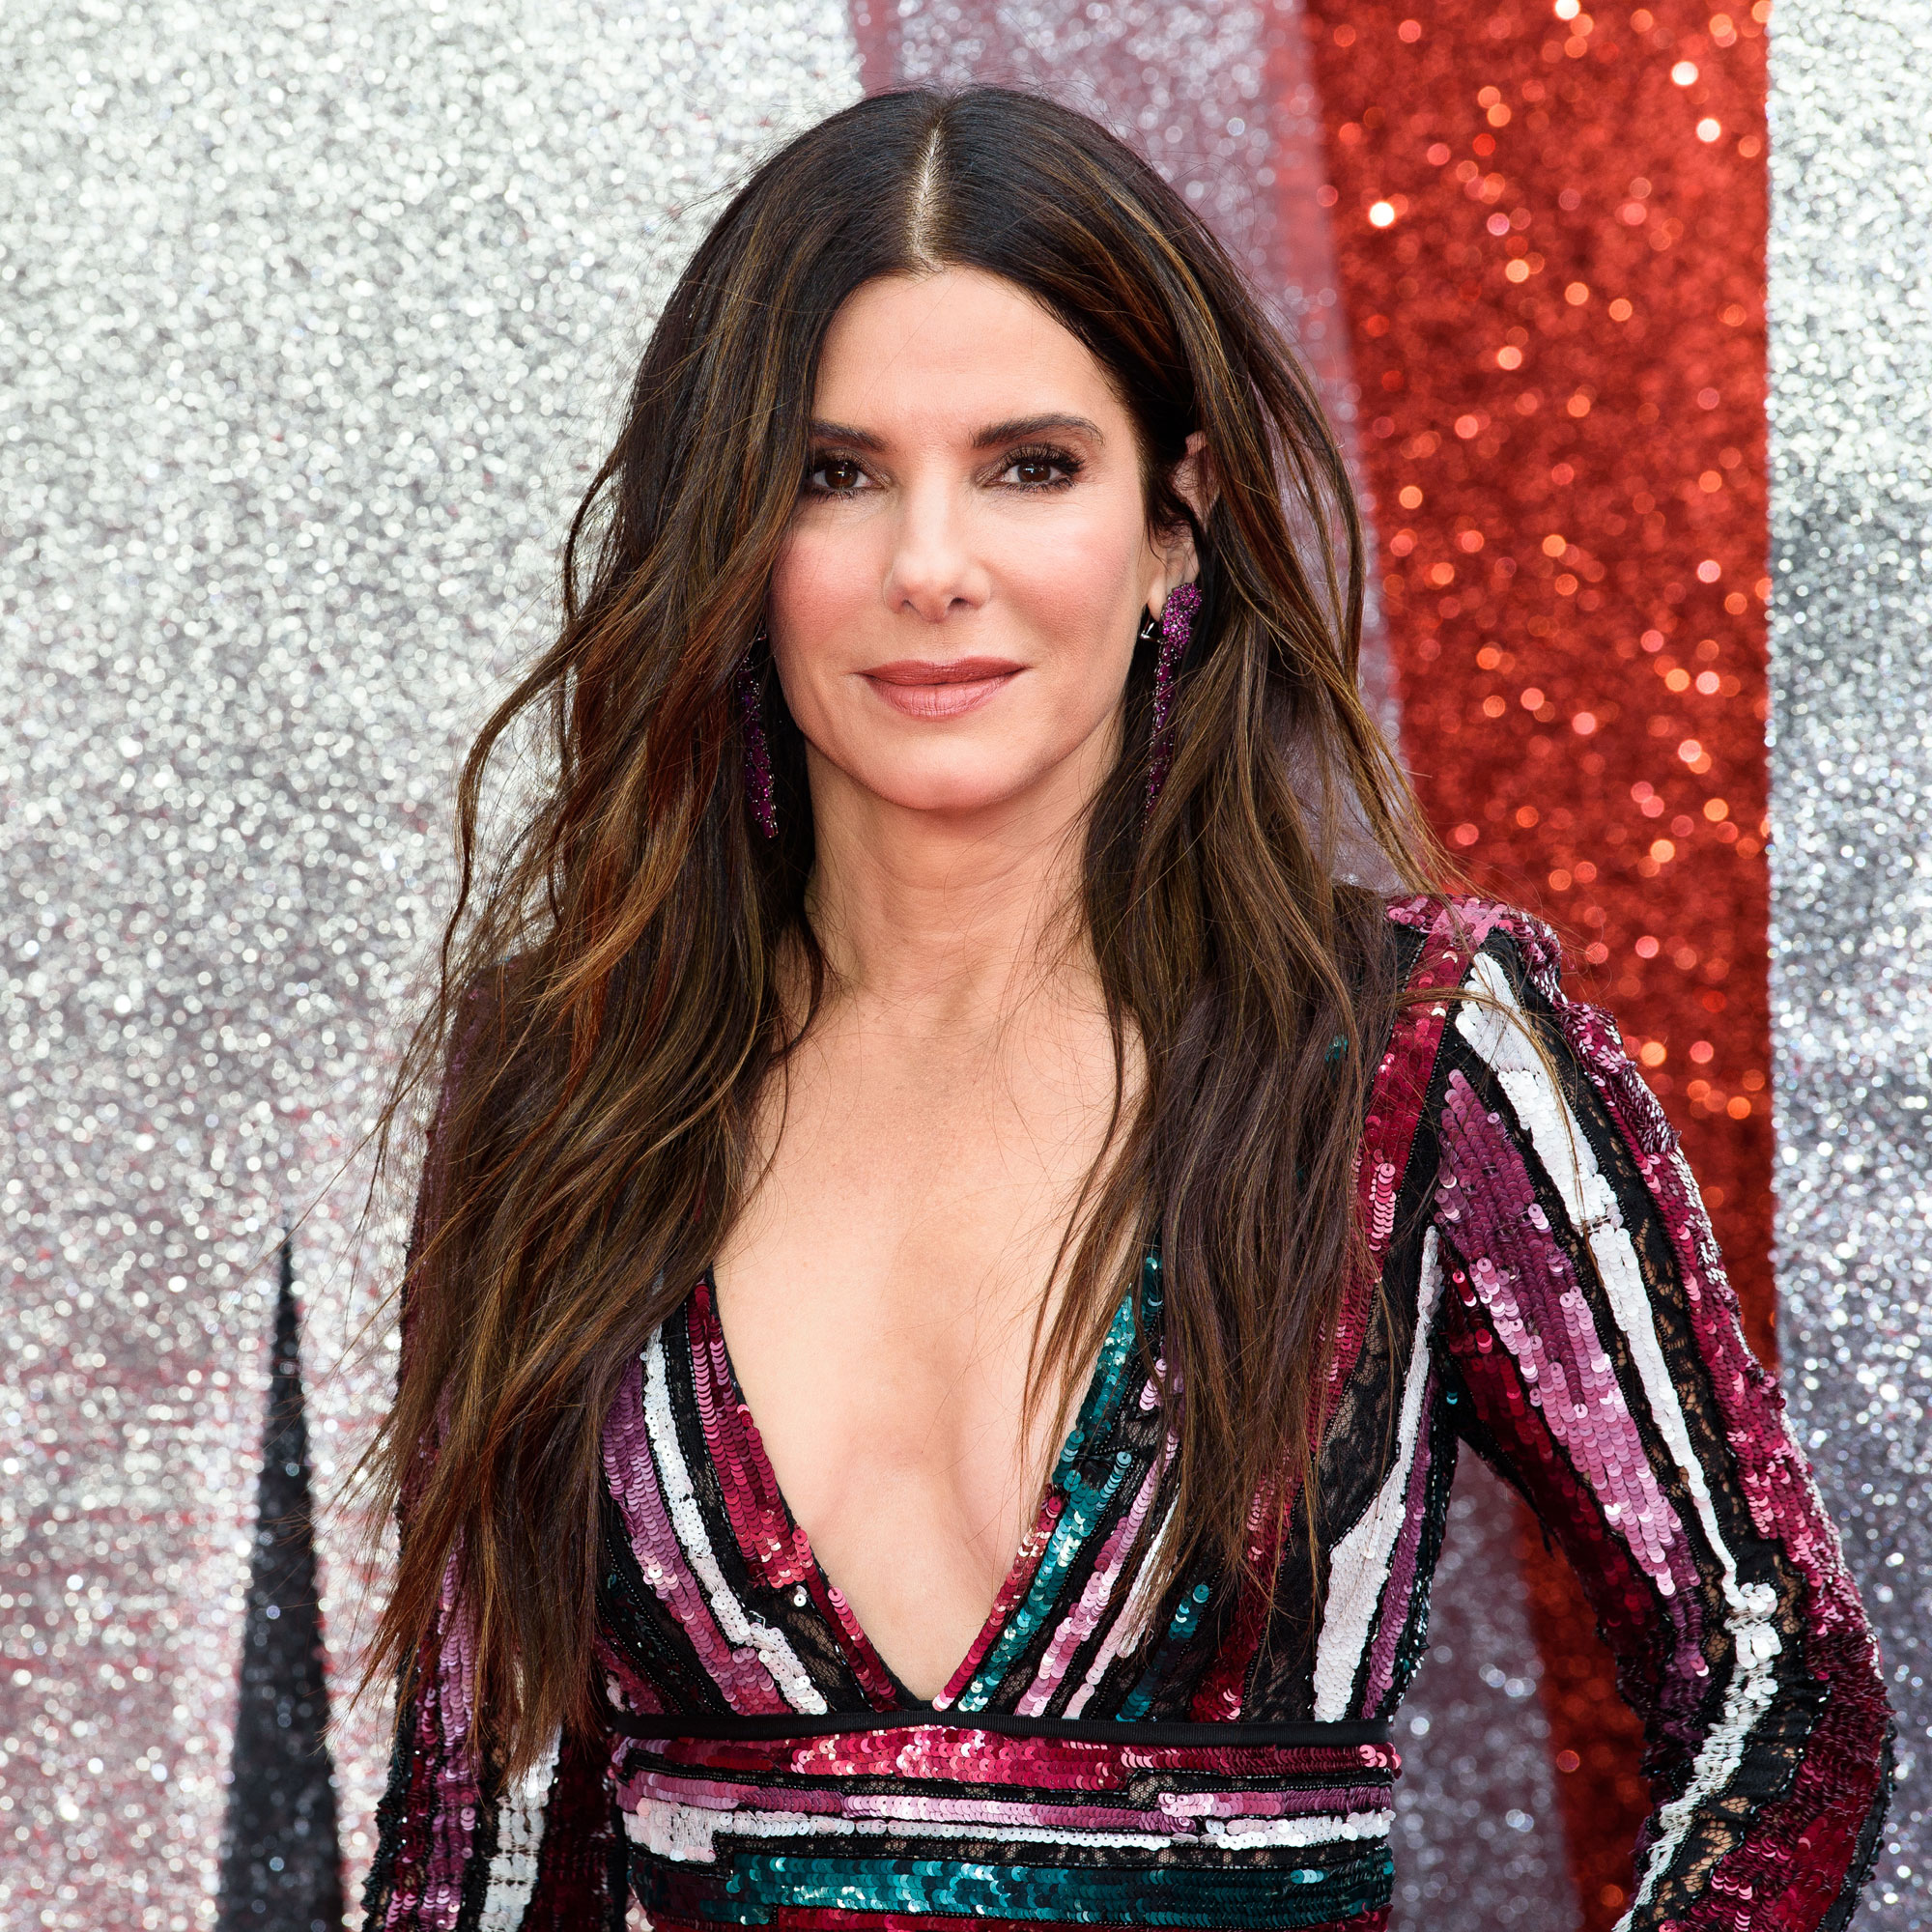 Sandra-Bullock-Plans-to-Move-%E2%80%98Down-the-Street%E2%80%99-From-Her-Kids-When-They-Start-College.jpg